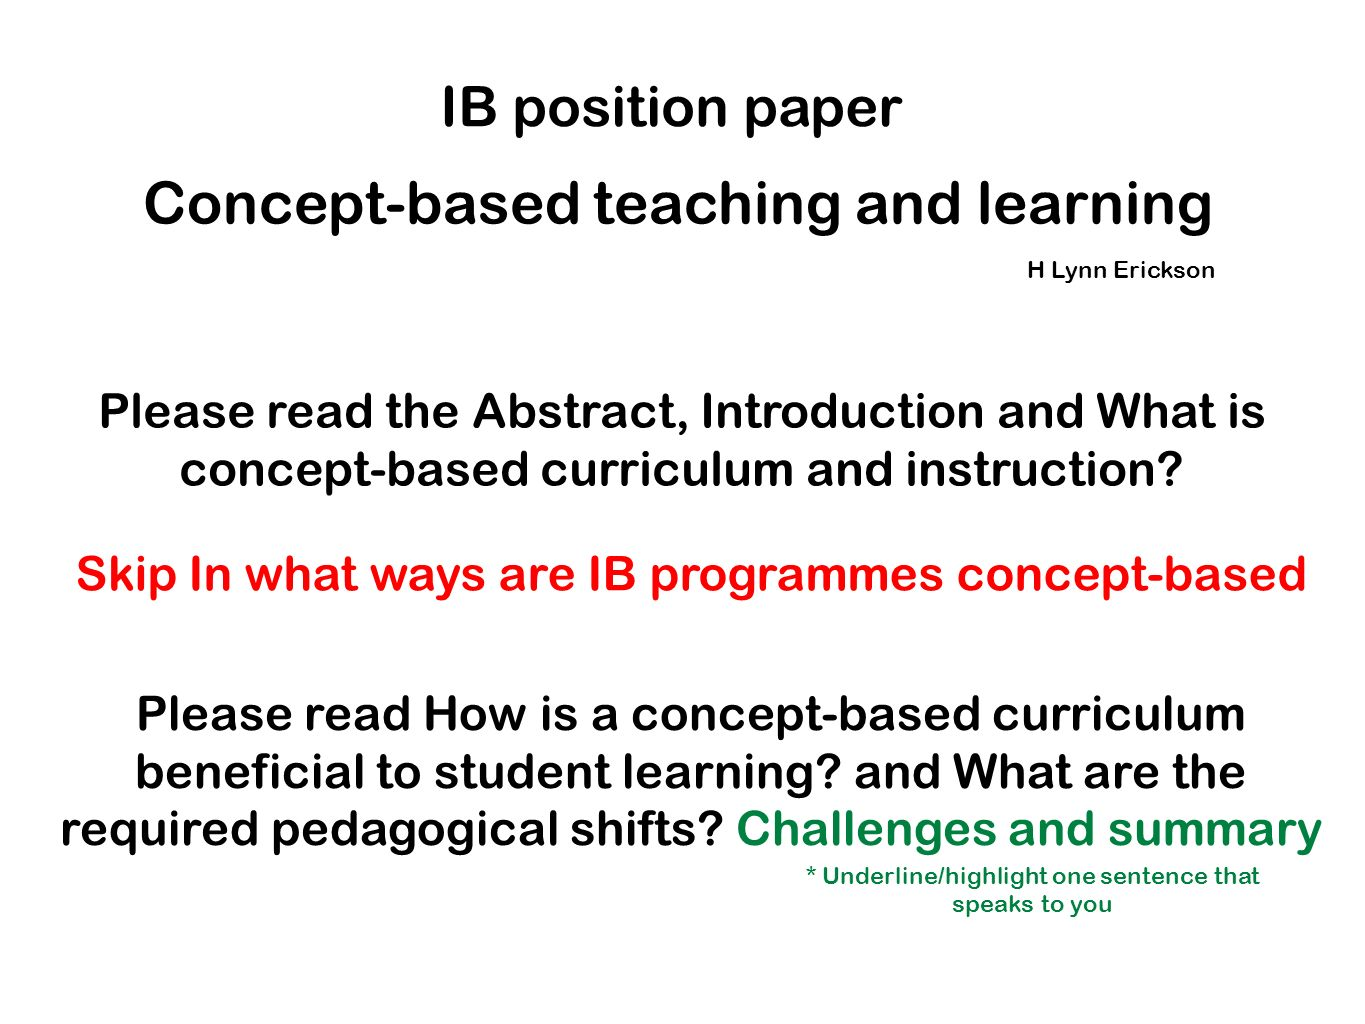 Concept-based teaching and learning